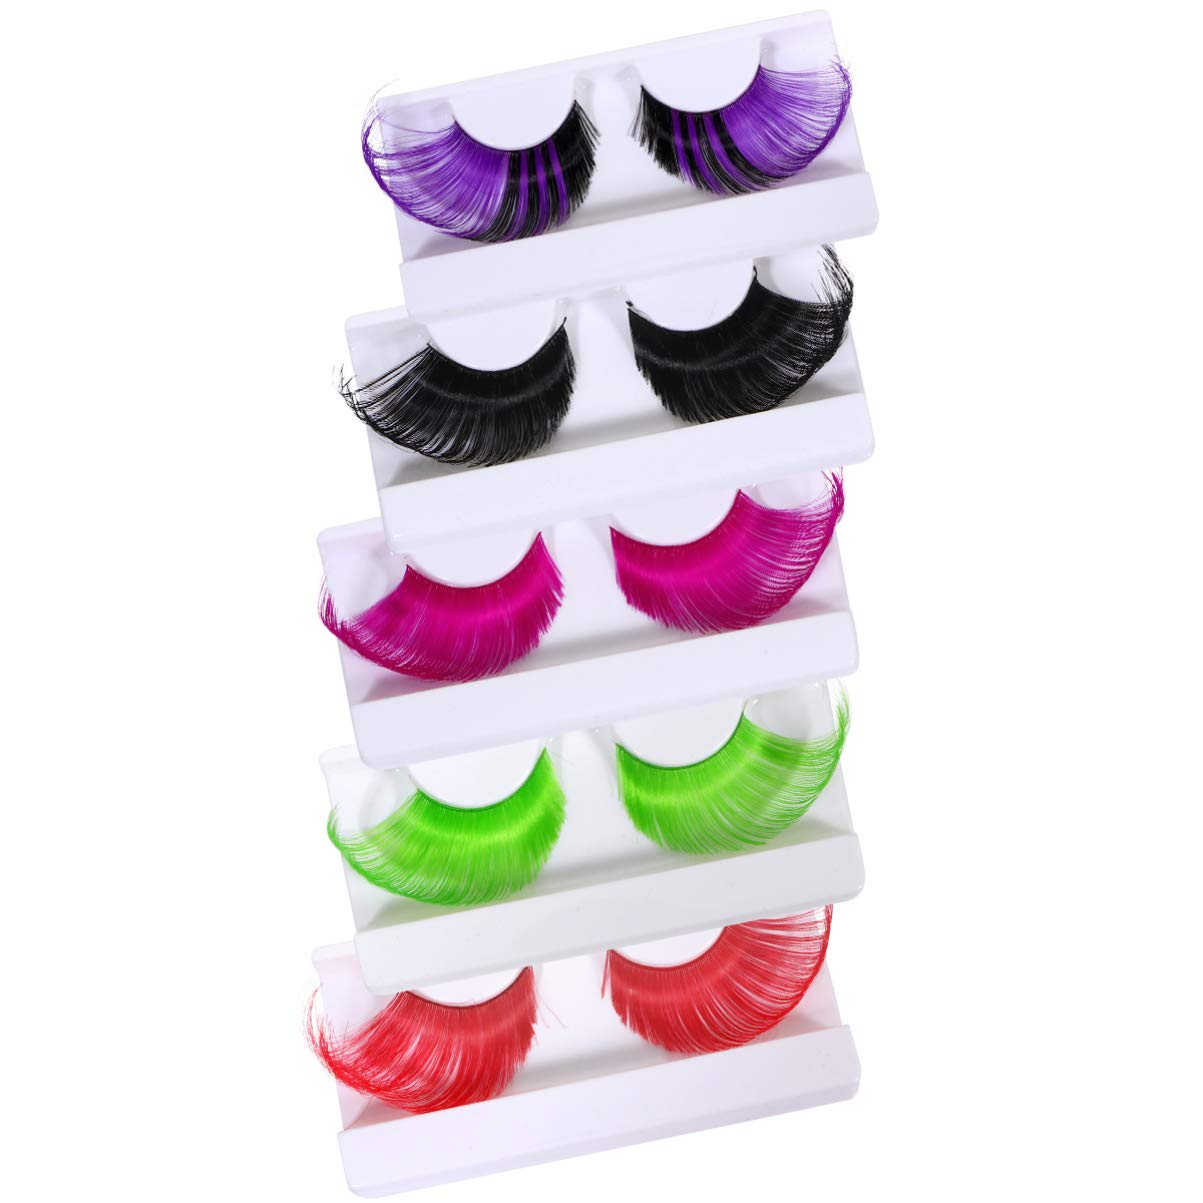 PIXNOR Long Thick False Eyelashes 5 Pairs Halloween Exaggerated Fake Eyelashes Fashion Artificial Lashes for Women Girls Cosplay Costume Party Festival (Assorted Color)